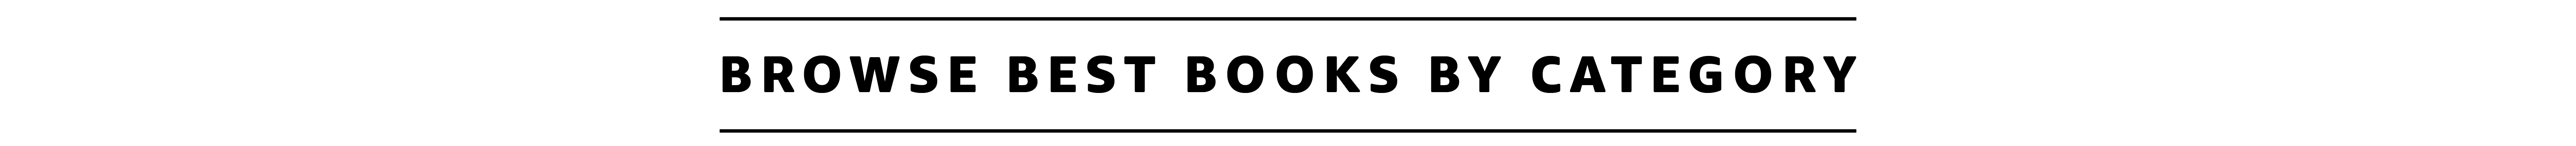 Best Books by Category